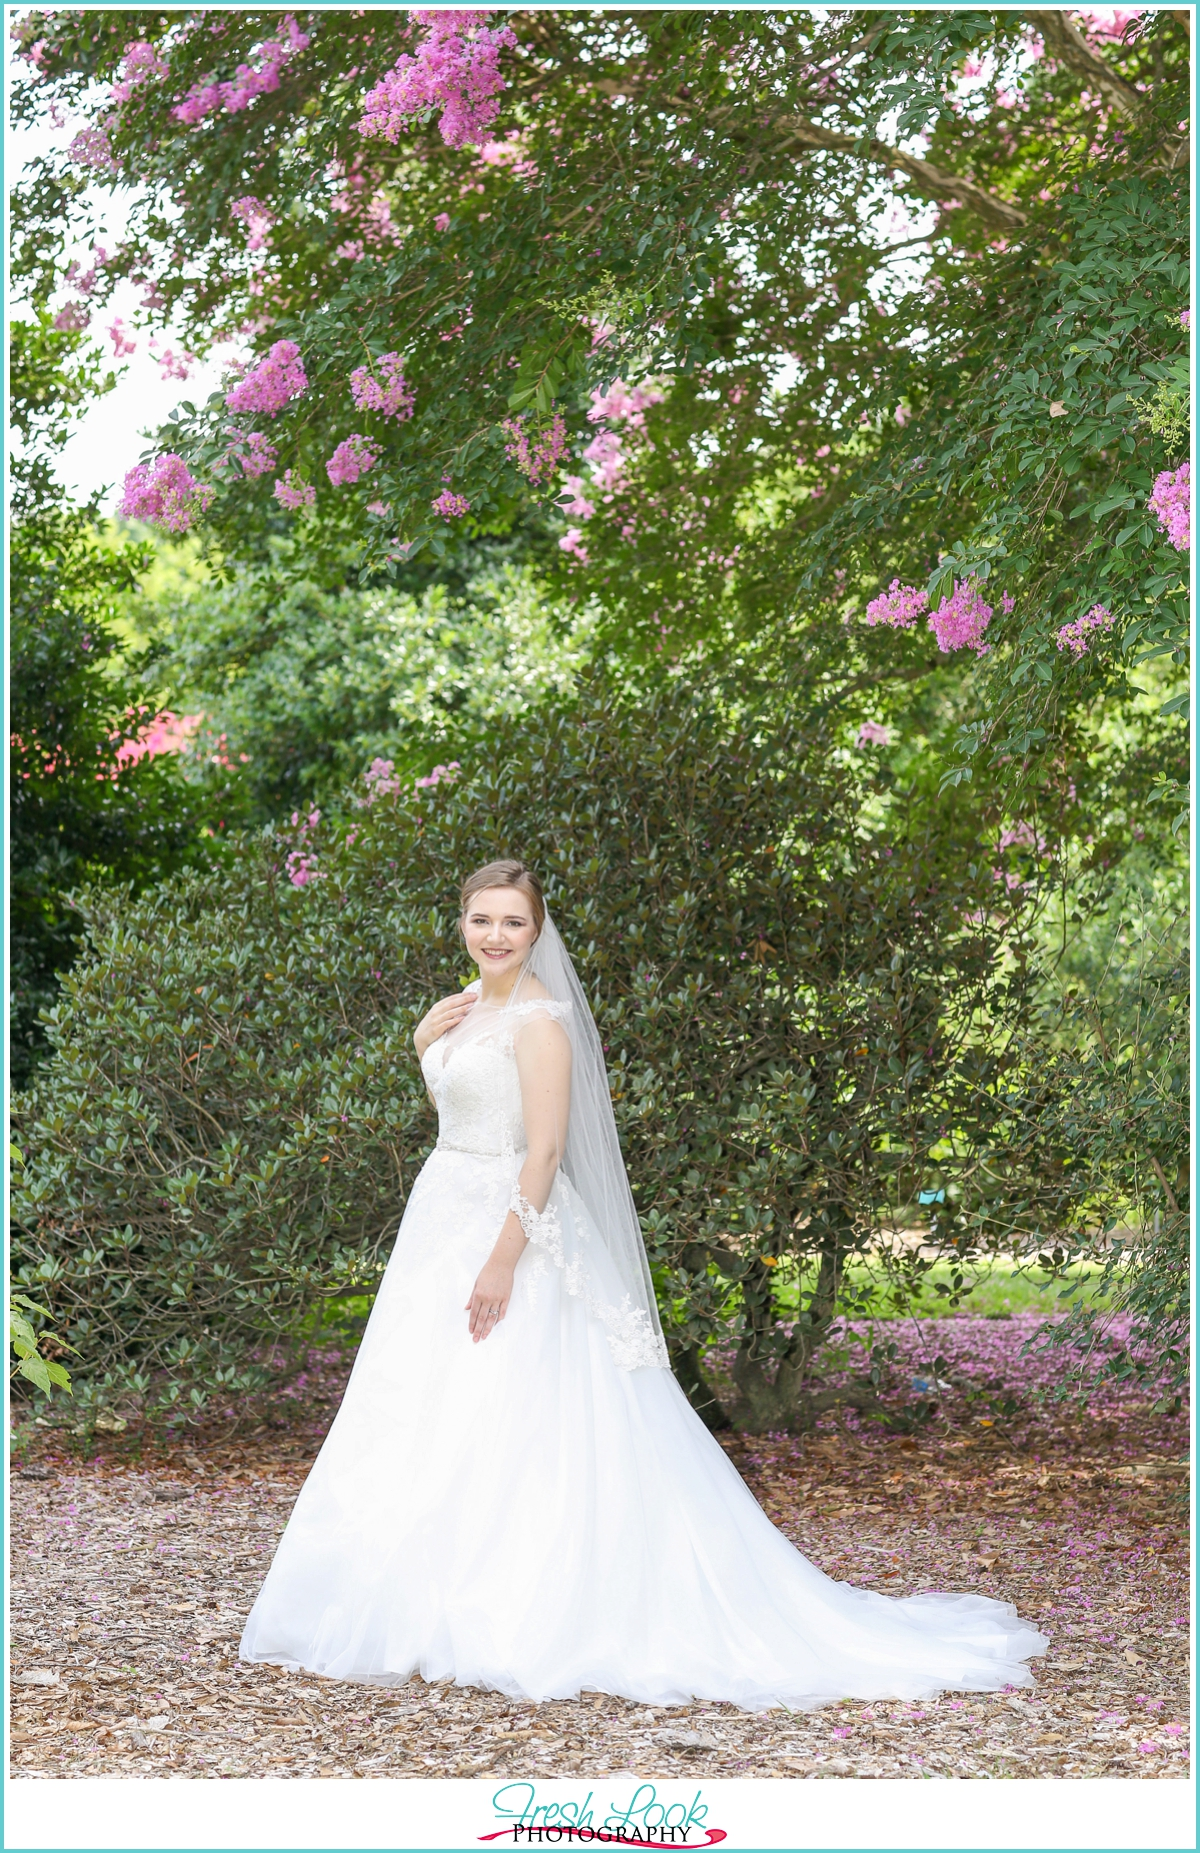 Flower Garden Bridal Session | Liz - JudithsFreshLook.com